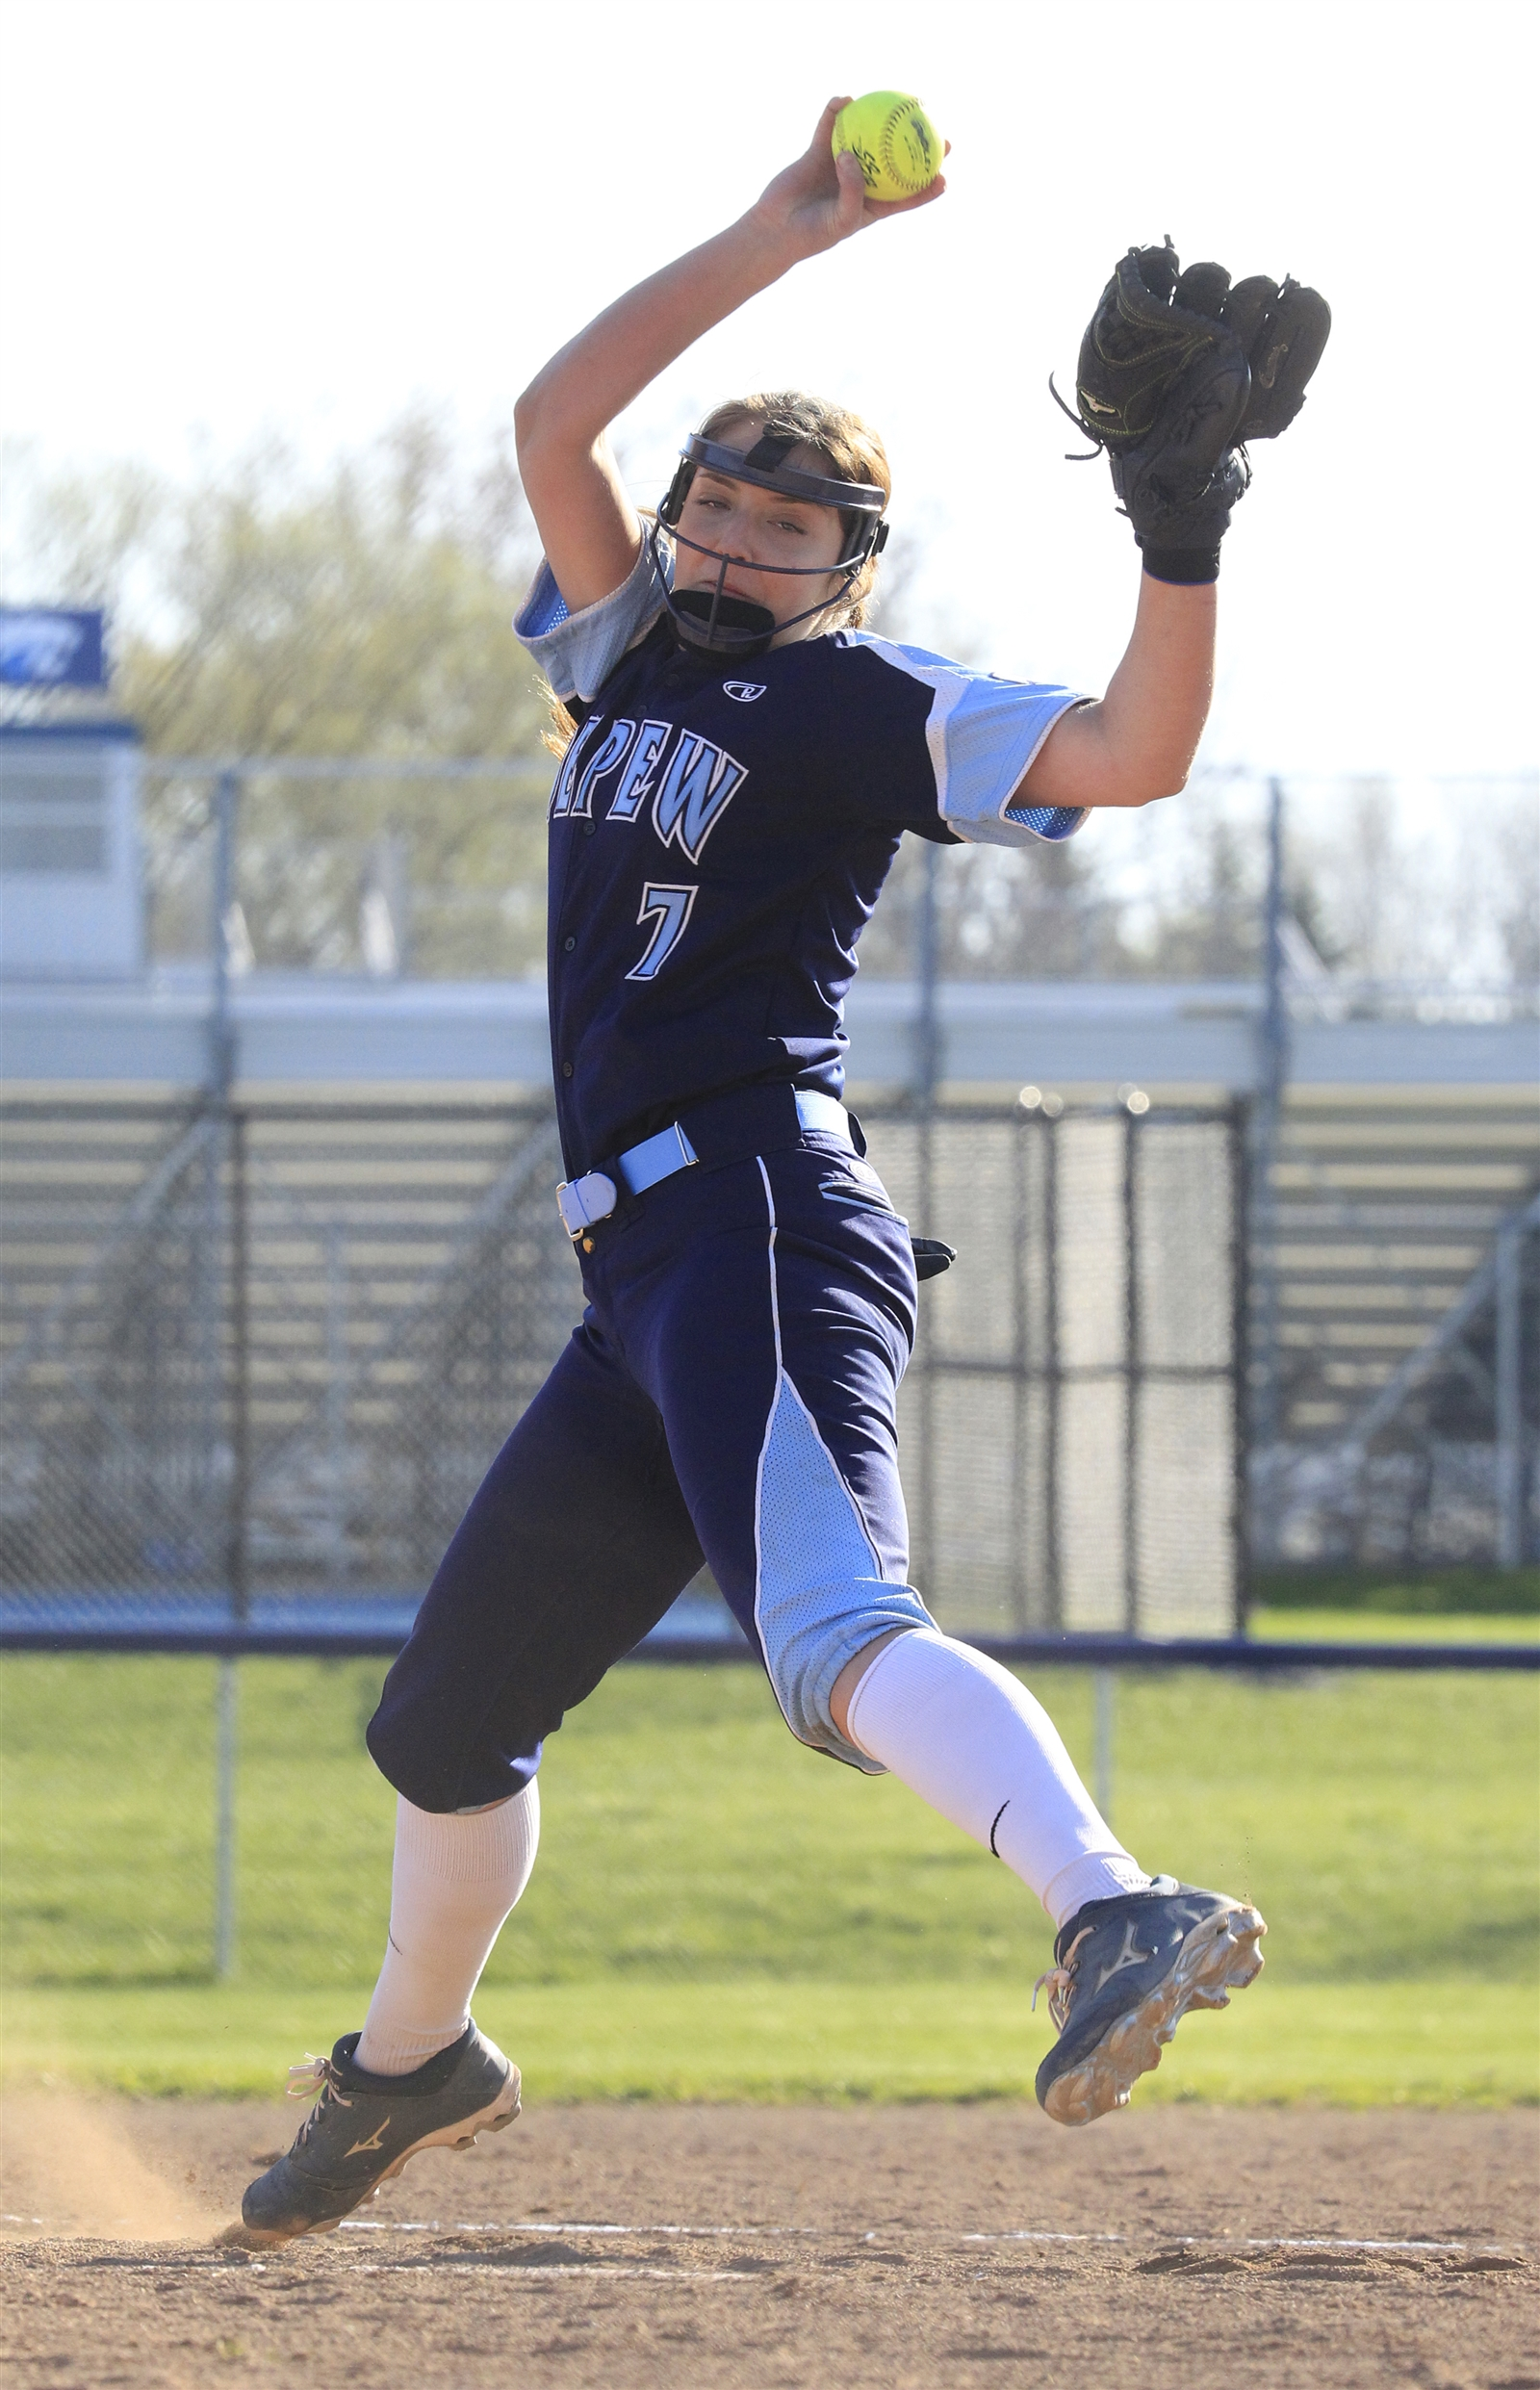 Depew pitcher Karsen Cotton against Alden at Depew High School on Monday, April 17, 2017.